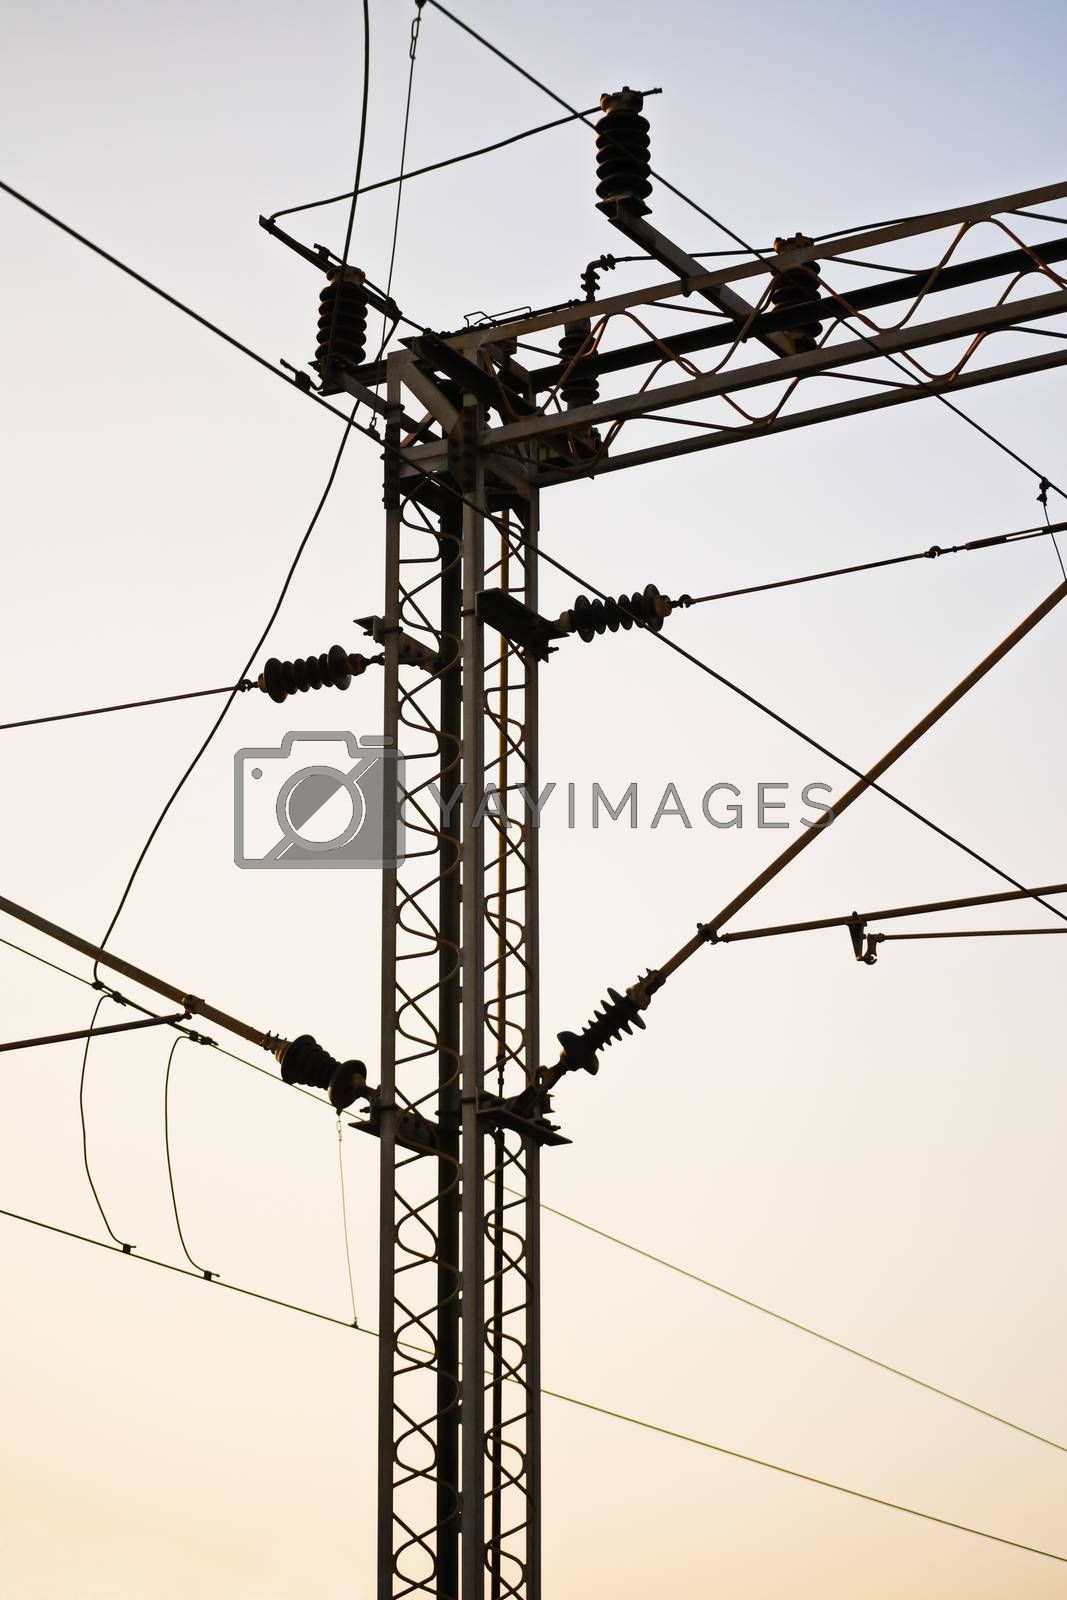 Railroad power transmission line tower during sunset.